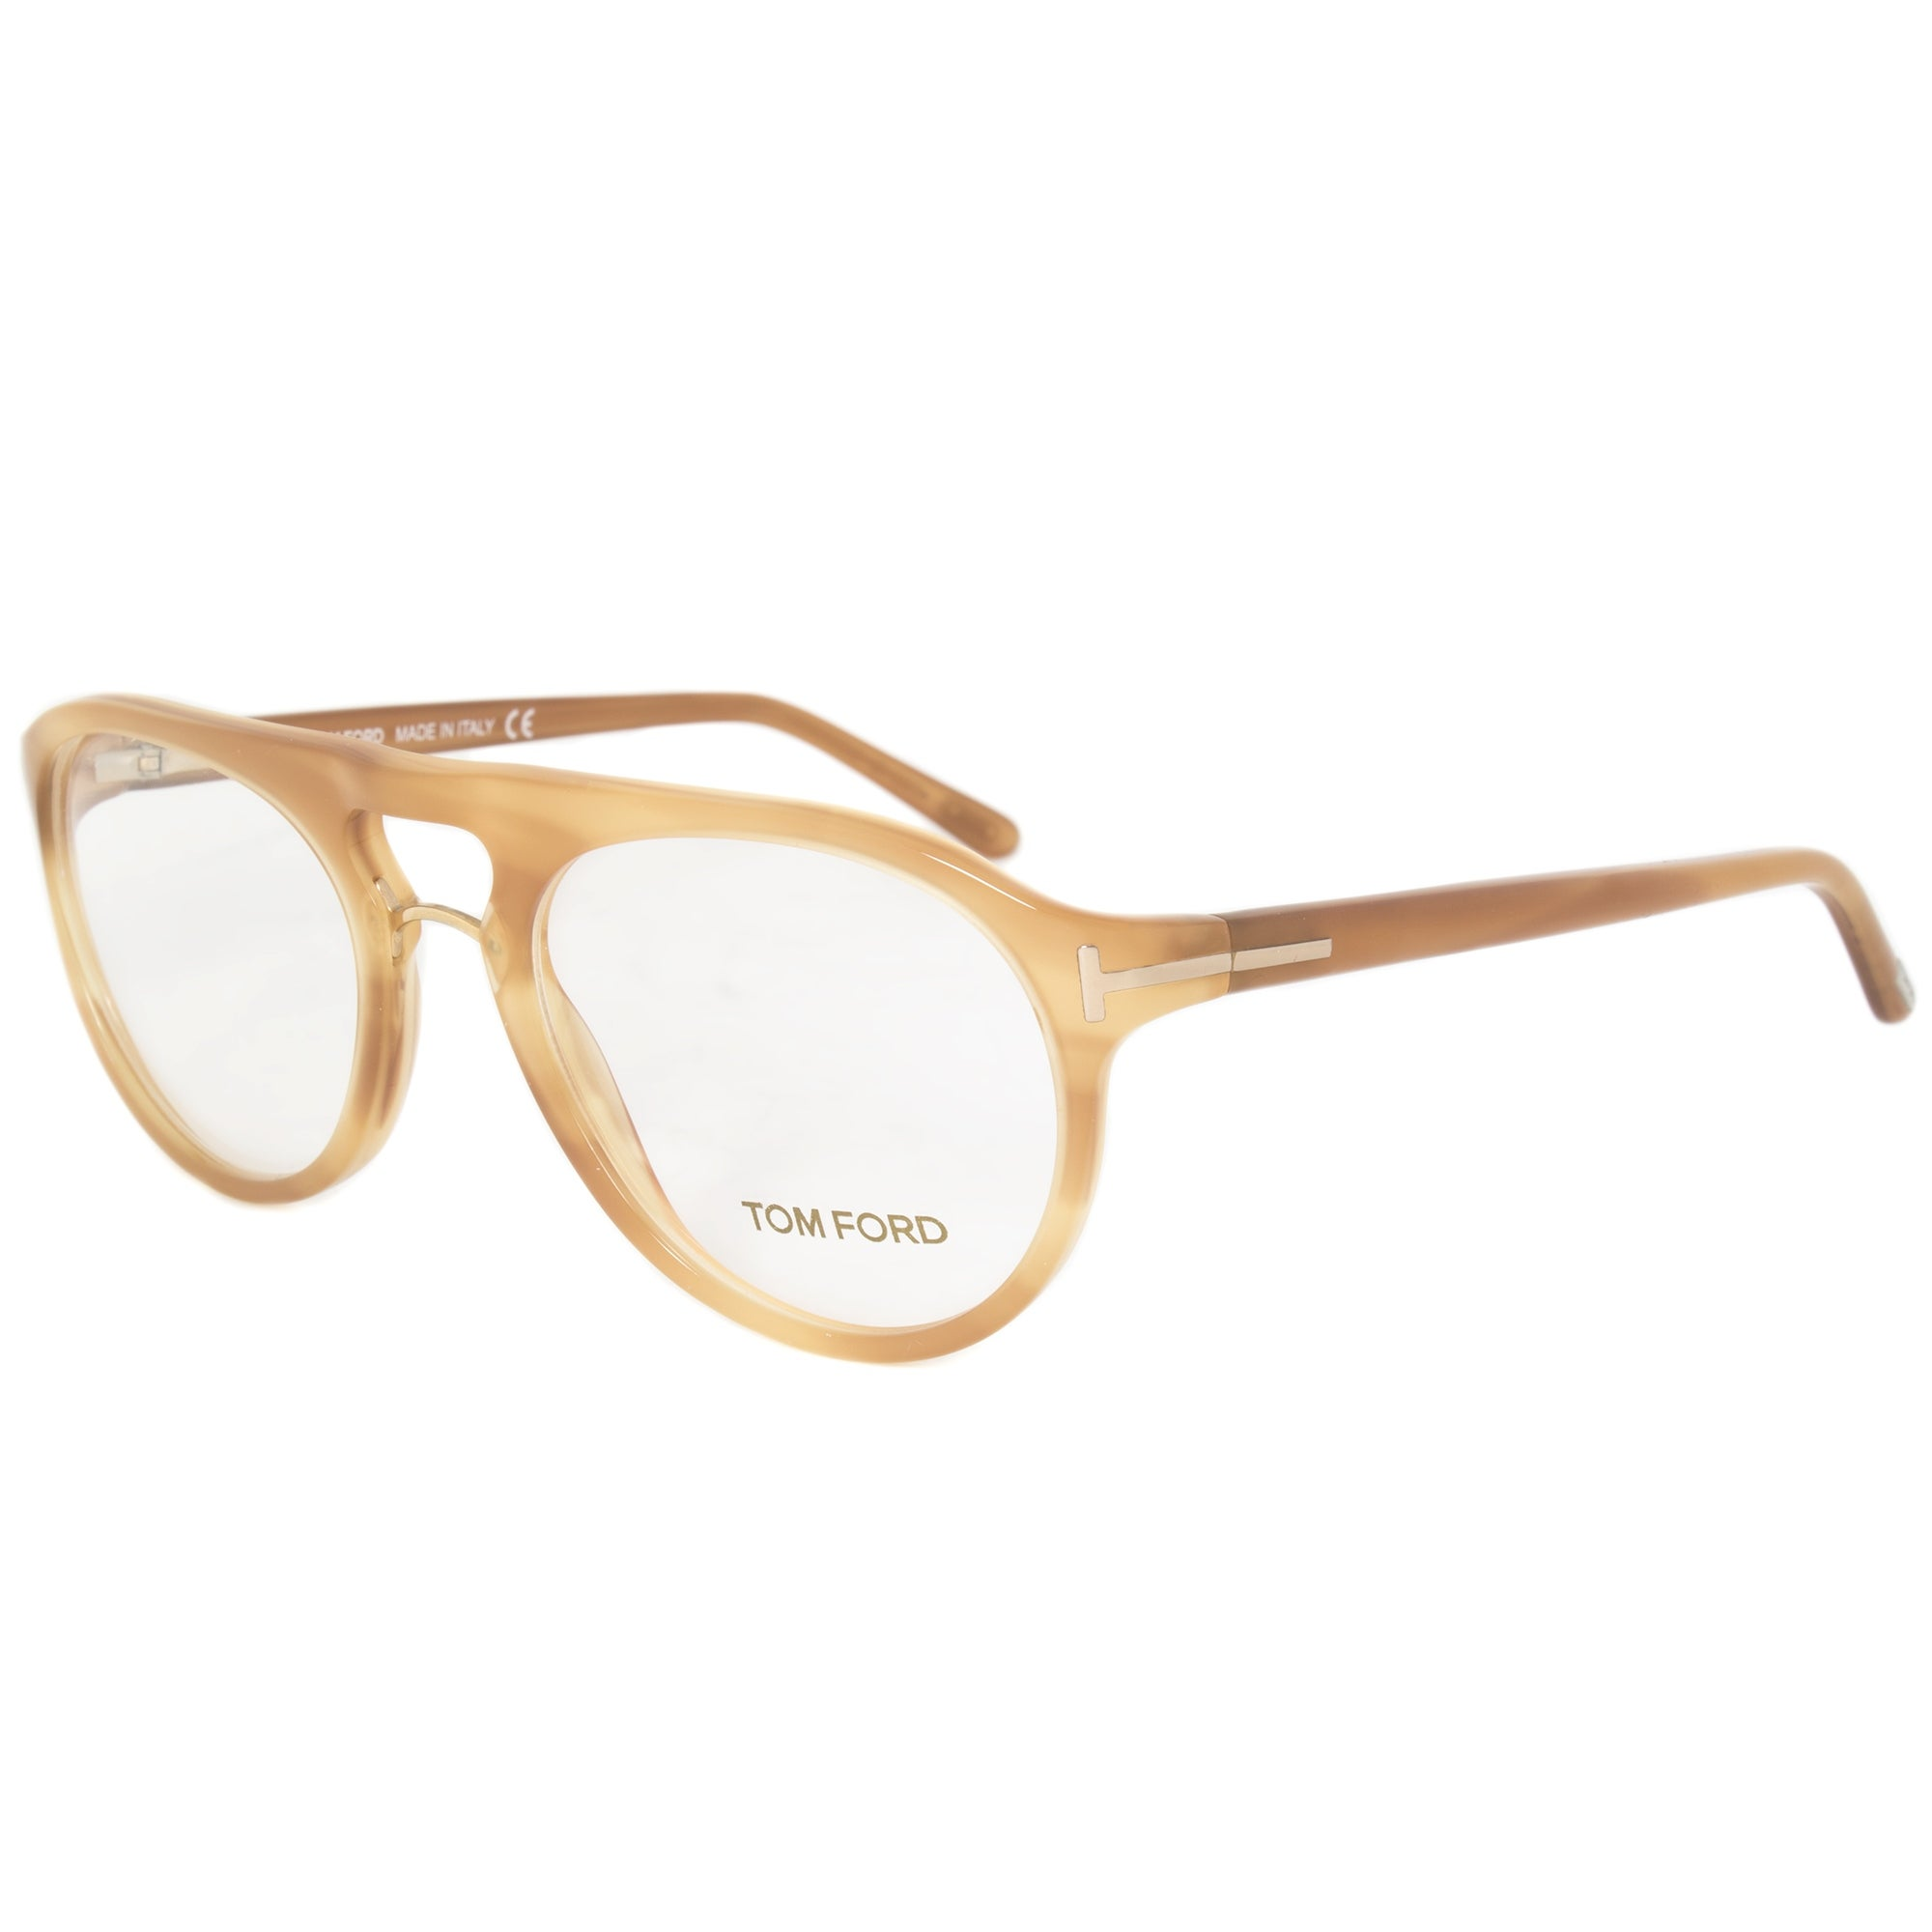 c5cfb1c693f21 Shop Tom Ford Unisex Round Eyeglasses FT5007 663 51 - Free Shipping Today -  Overstock - 19622882